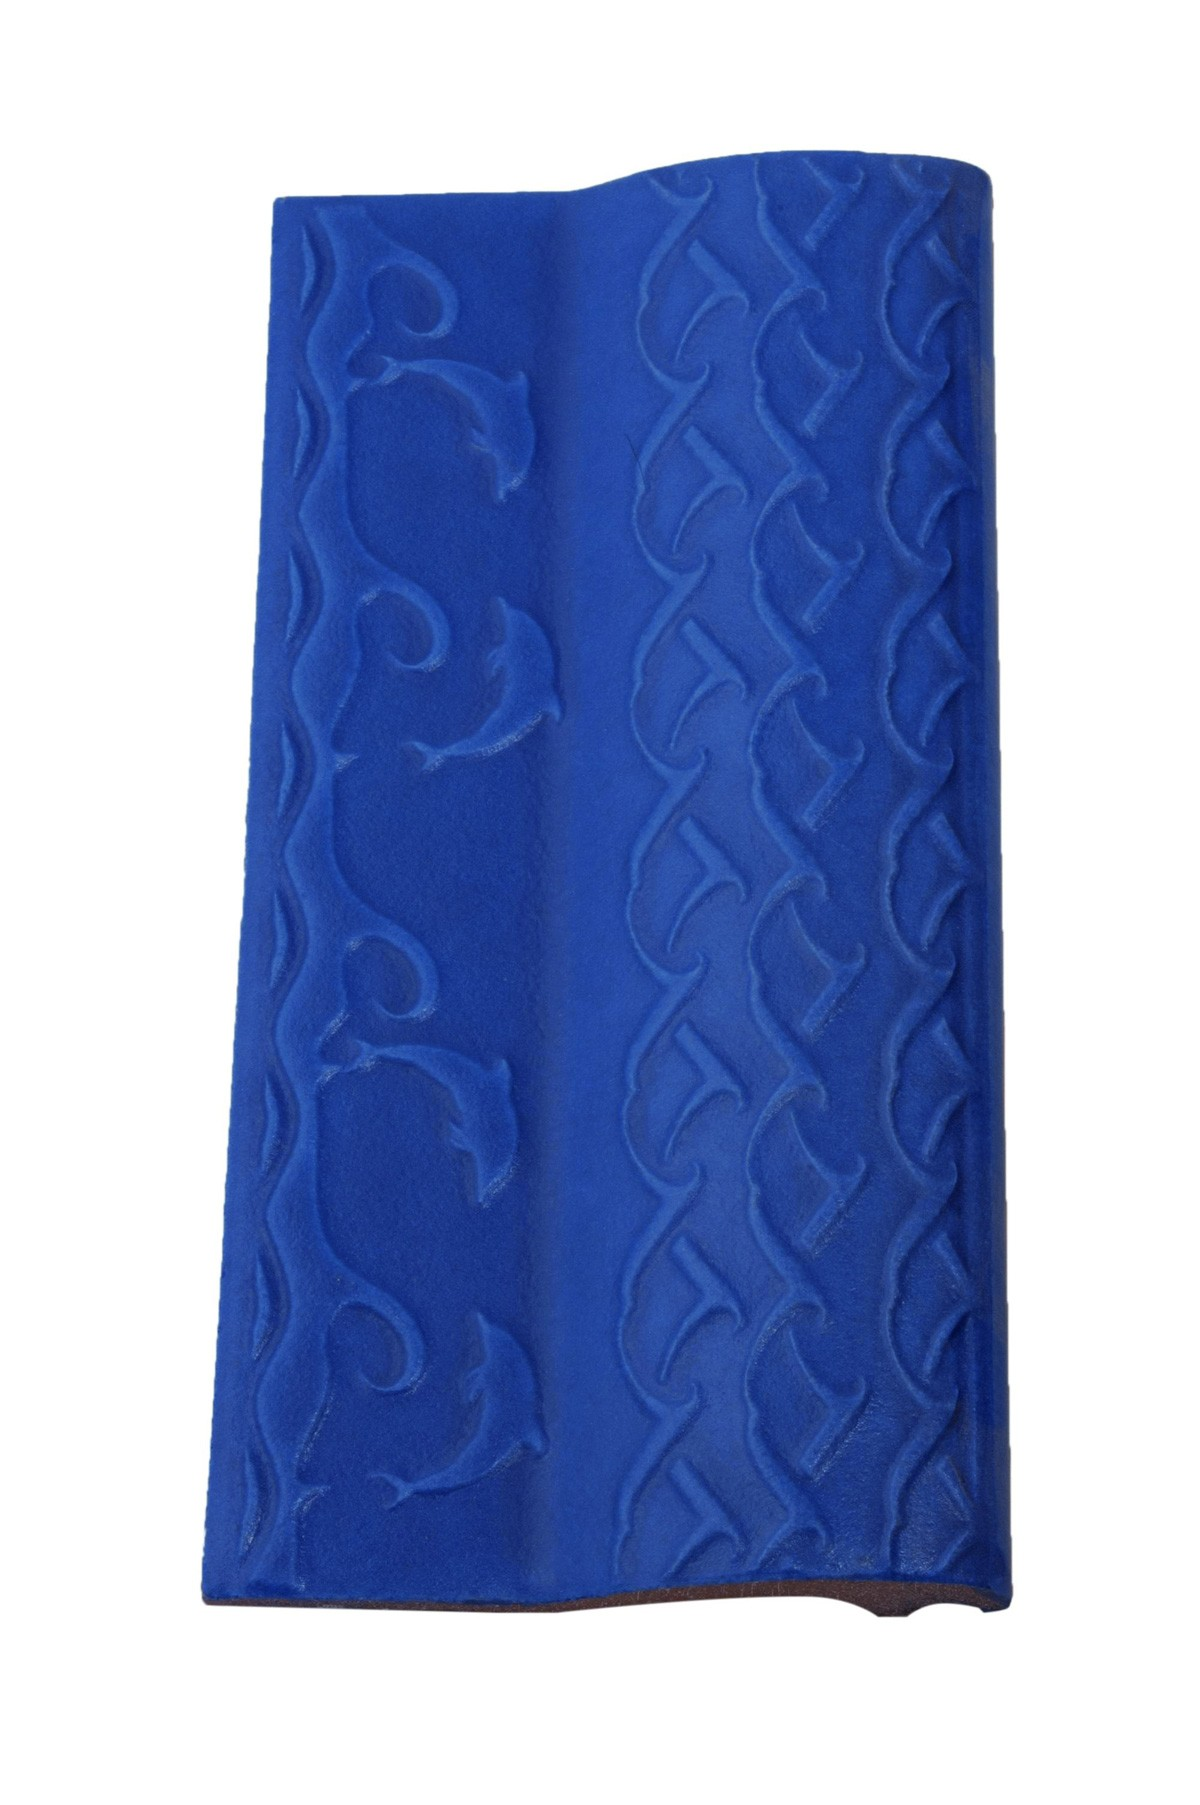 Borda de Piscina 12x25 Golfinho Azul Royal